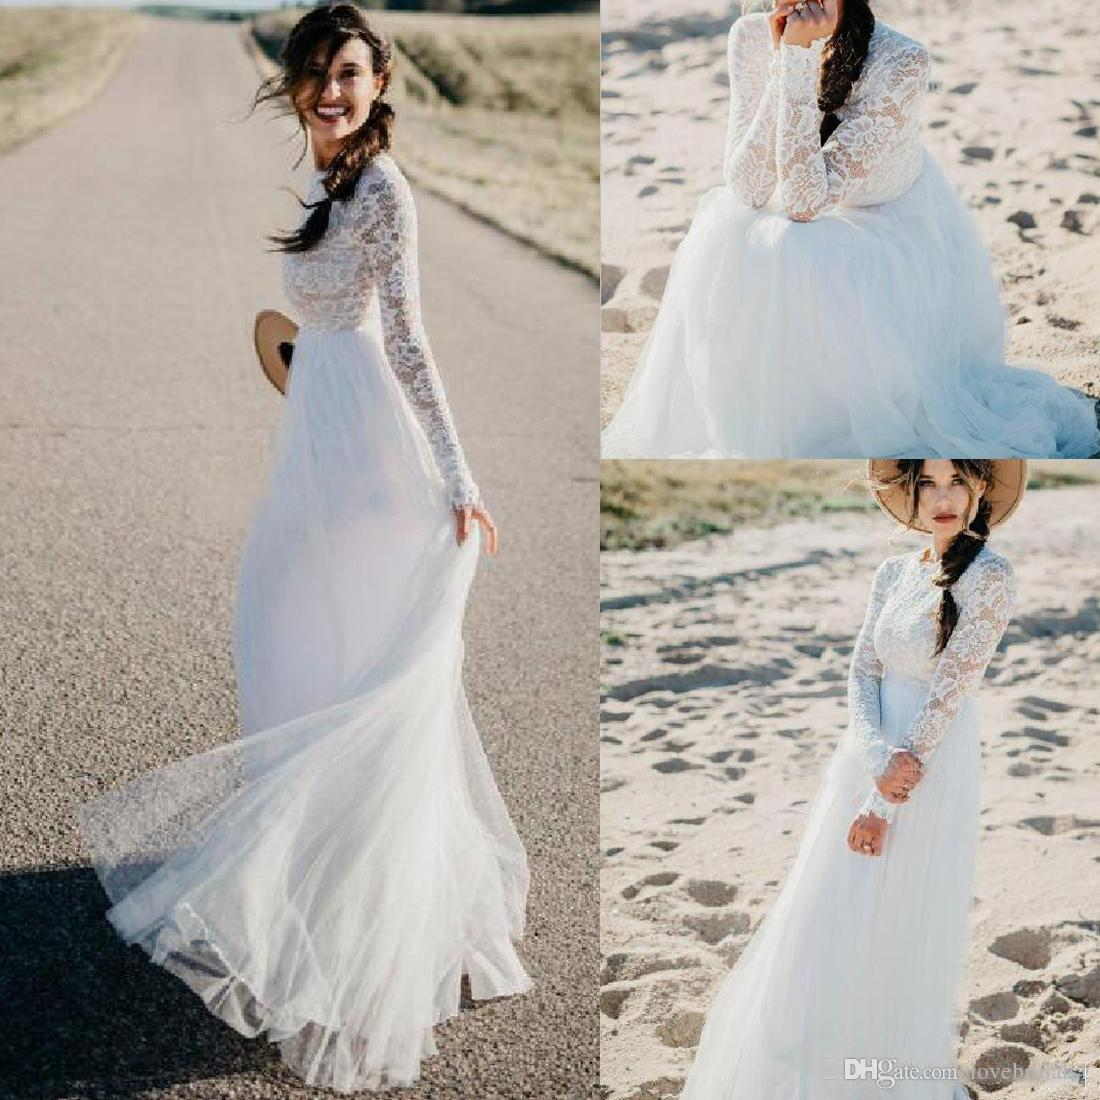 5ba8a6fc307cd Simple 2019 Long Sleeves Beach Wedding Dresses Lace Tulle Floor Length  Country Boho Empire Waist Wedding Bridal Gowns A Line